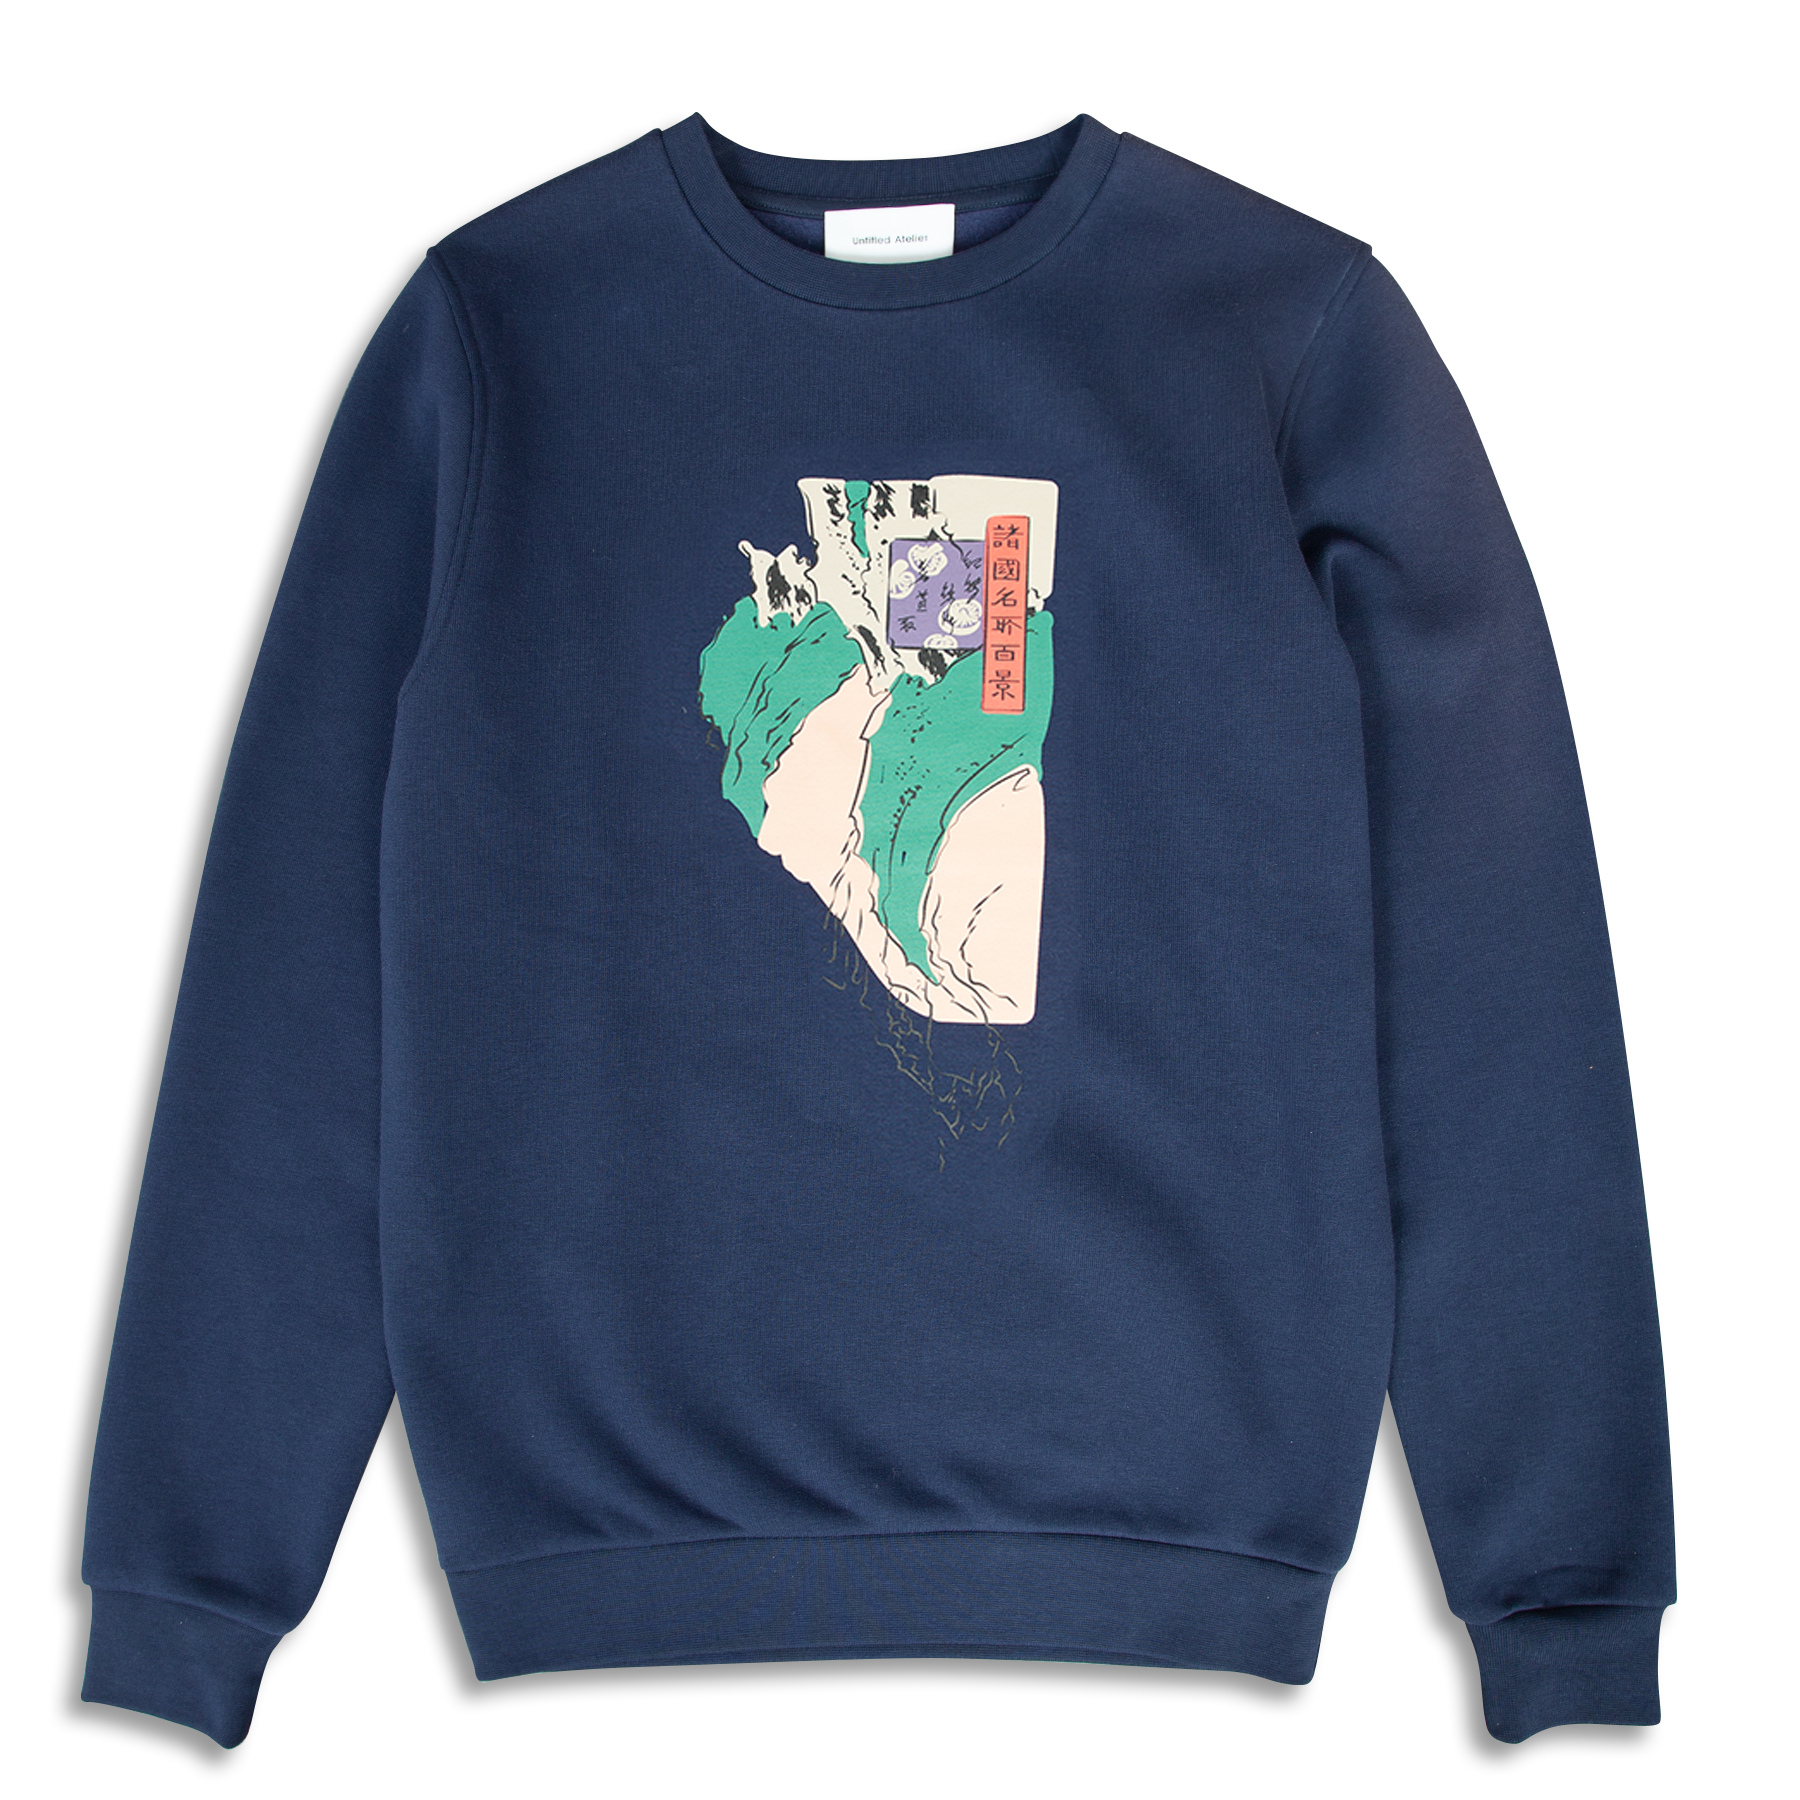 Abstract Art Printed Navy Sweatshirt | Untitled Atelier